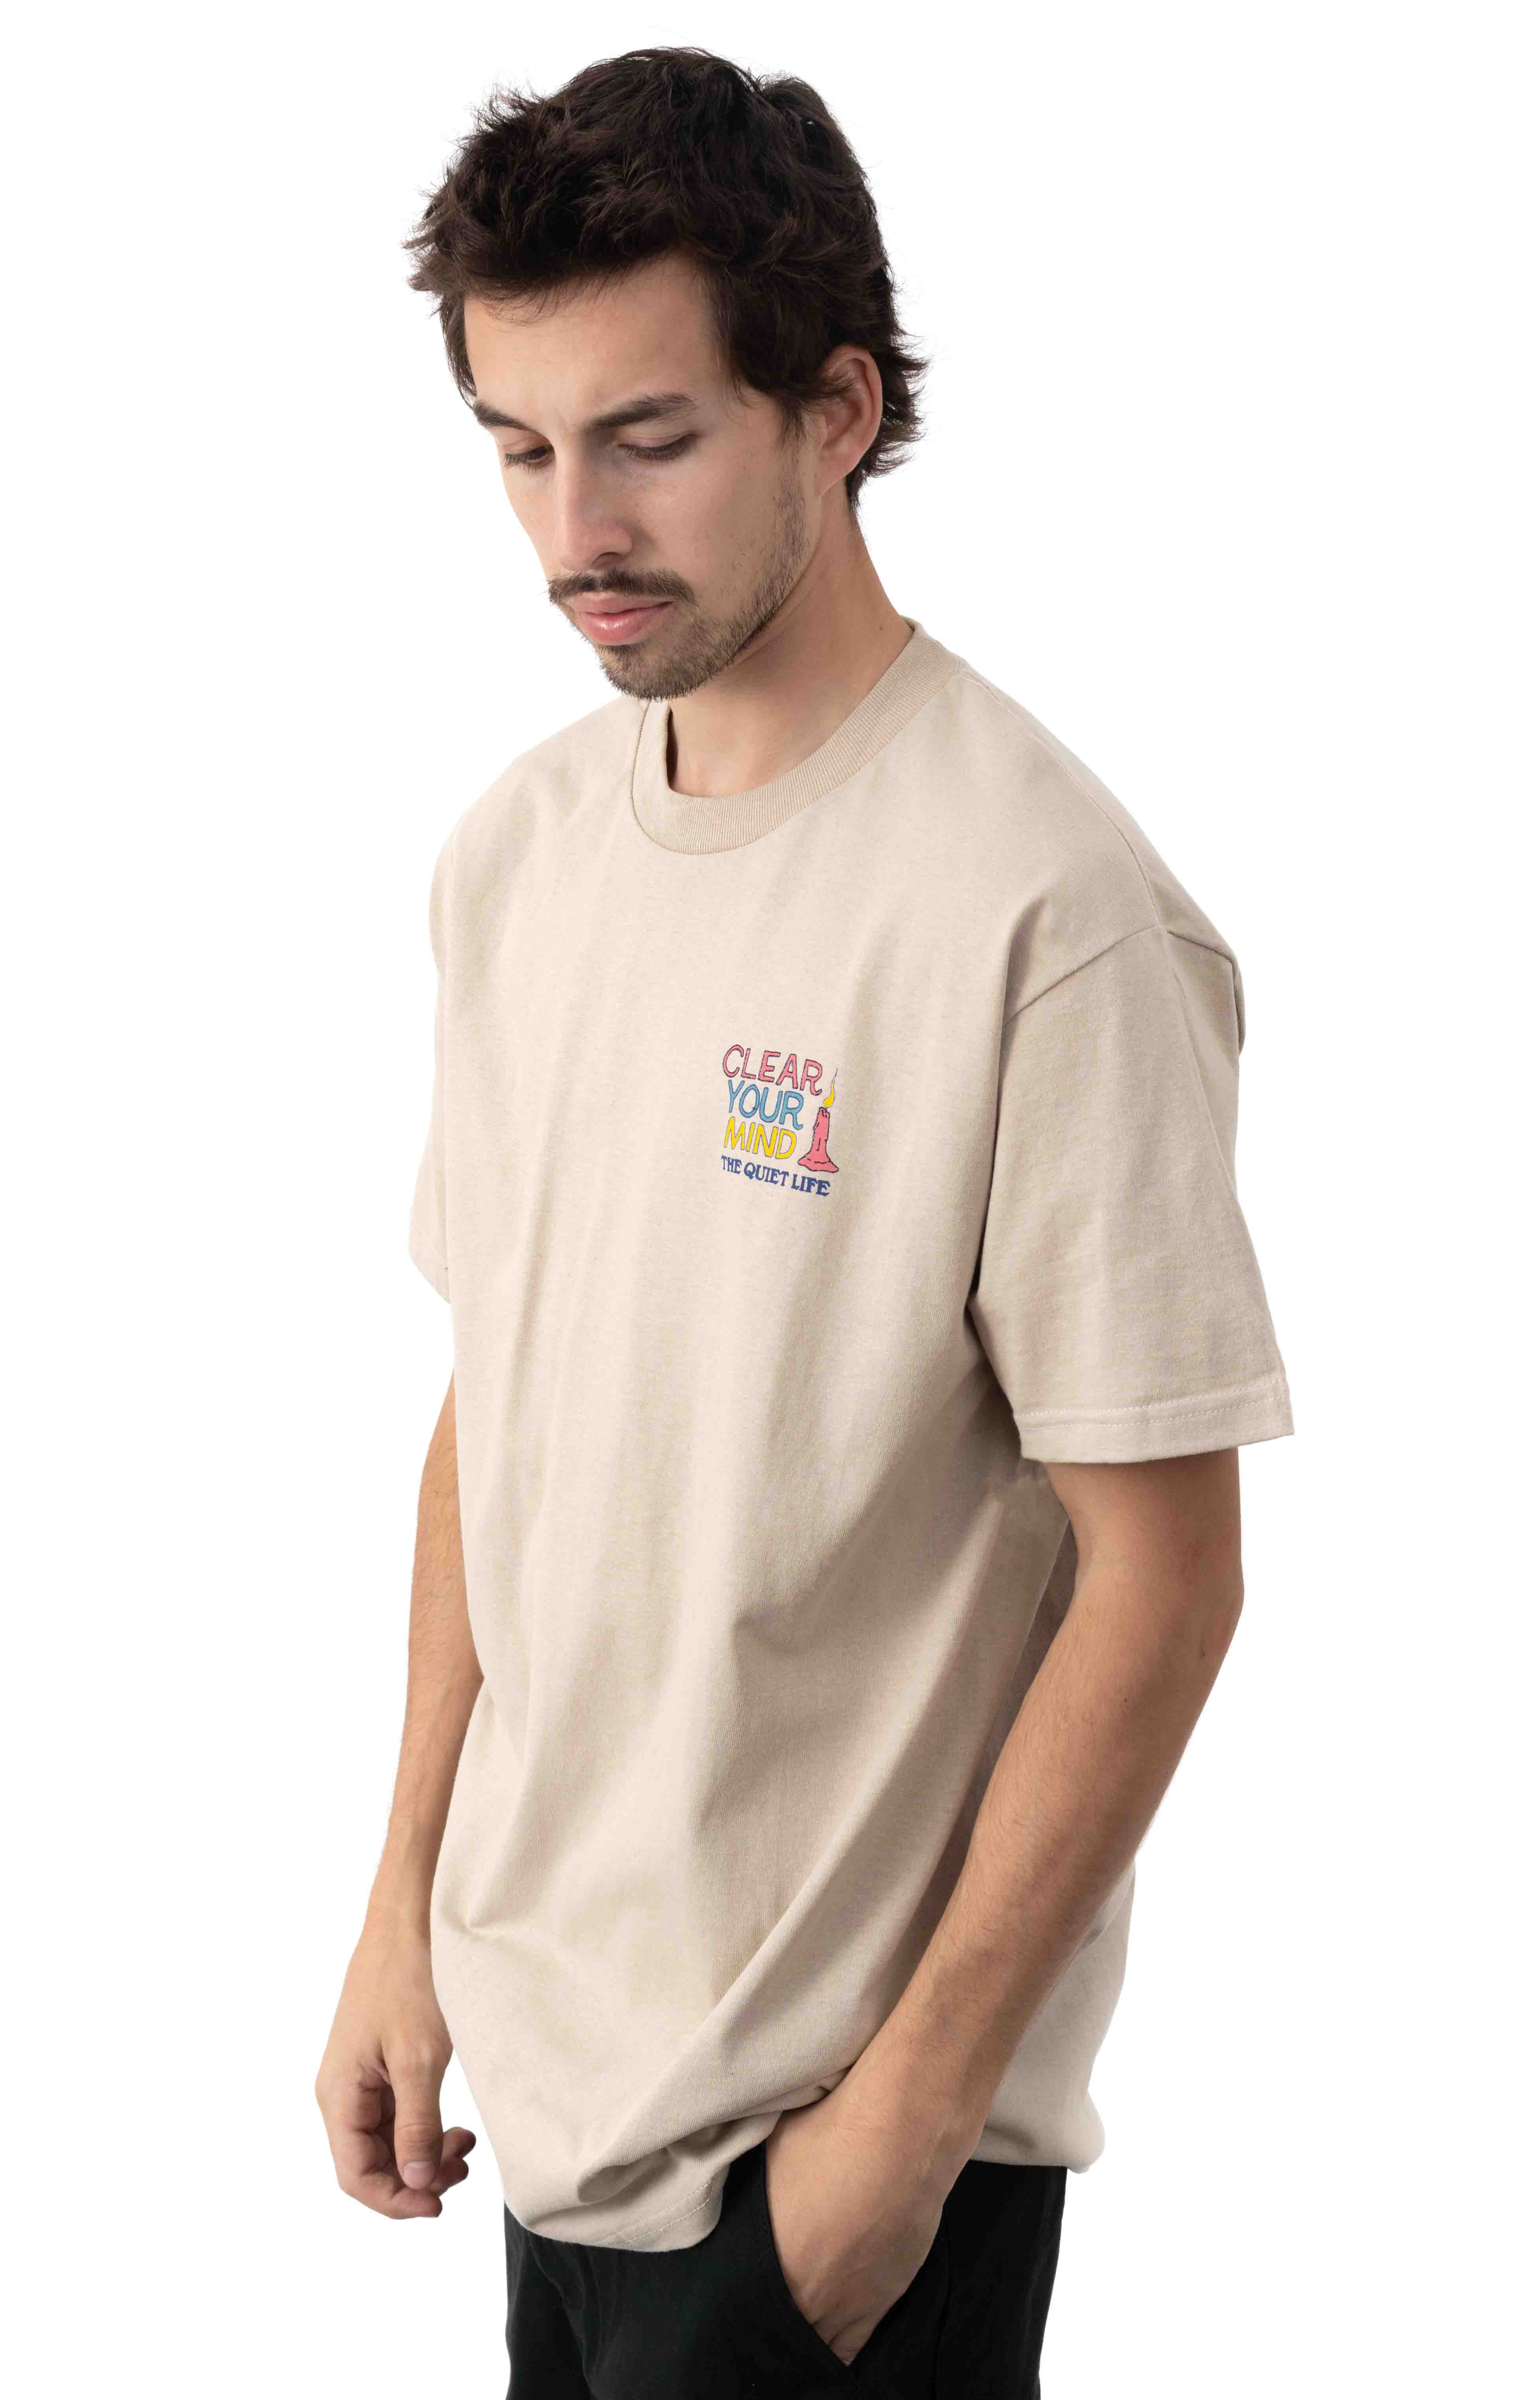 Clear Your Mind T-Shirt - Sand  3